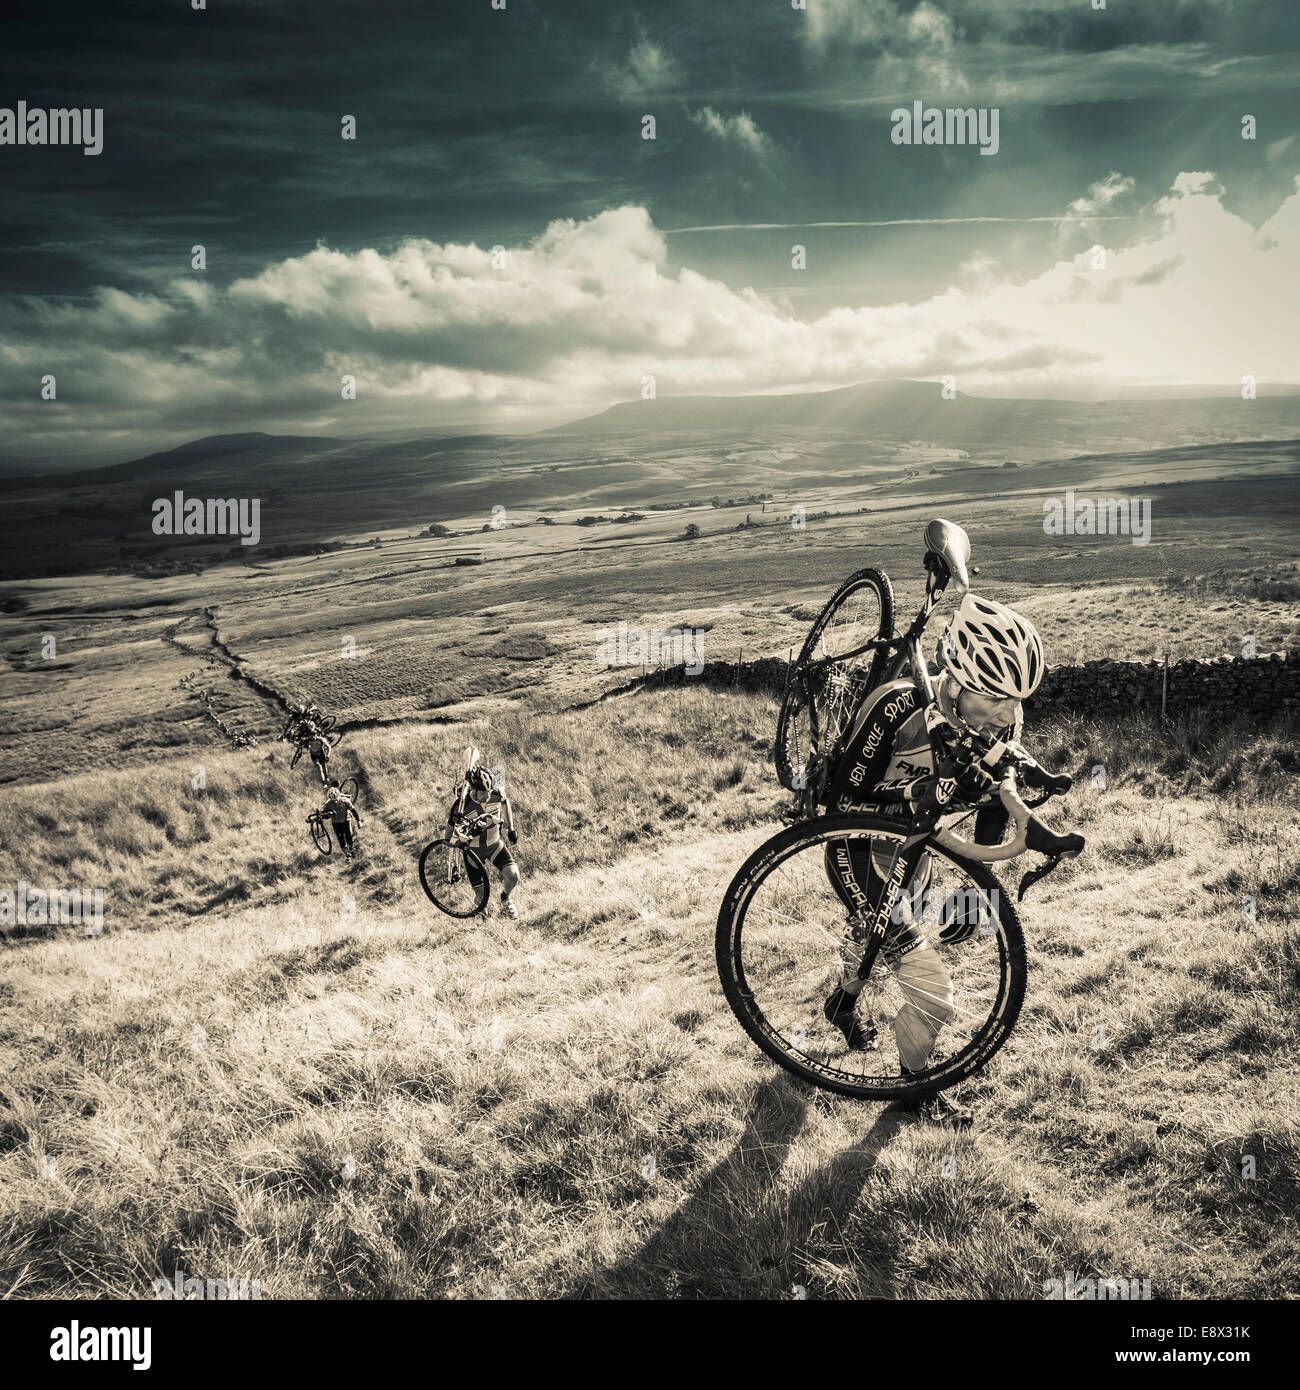 Rider climbing Simon Fell, Three Peaks cyclocross, Yorkshire Dales, UK - Stock Image